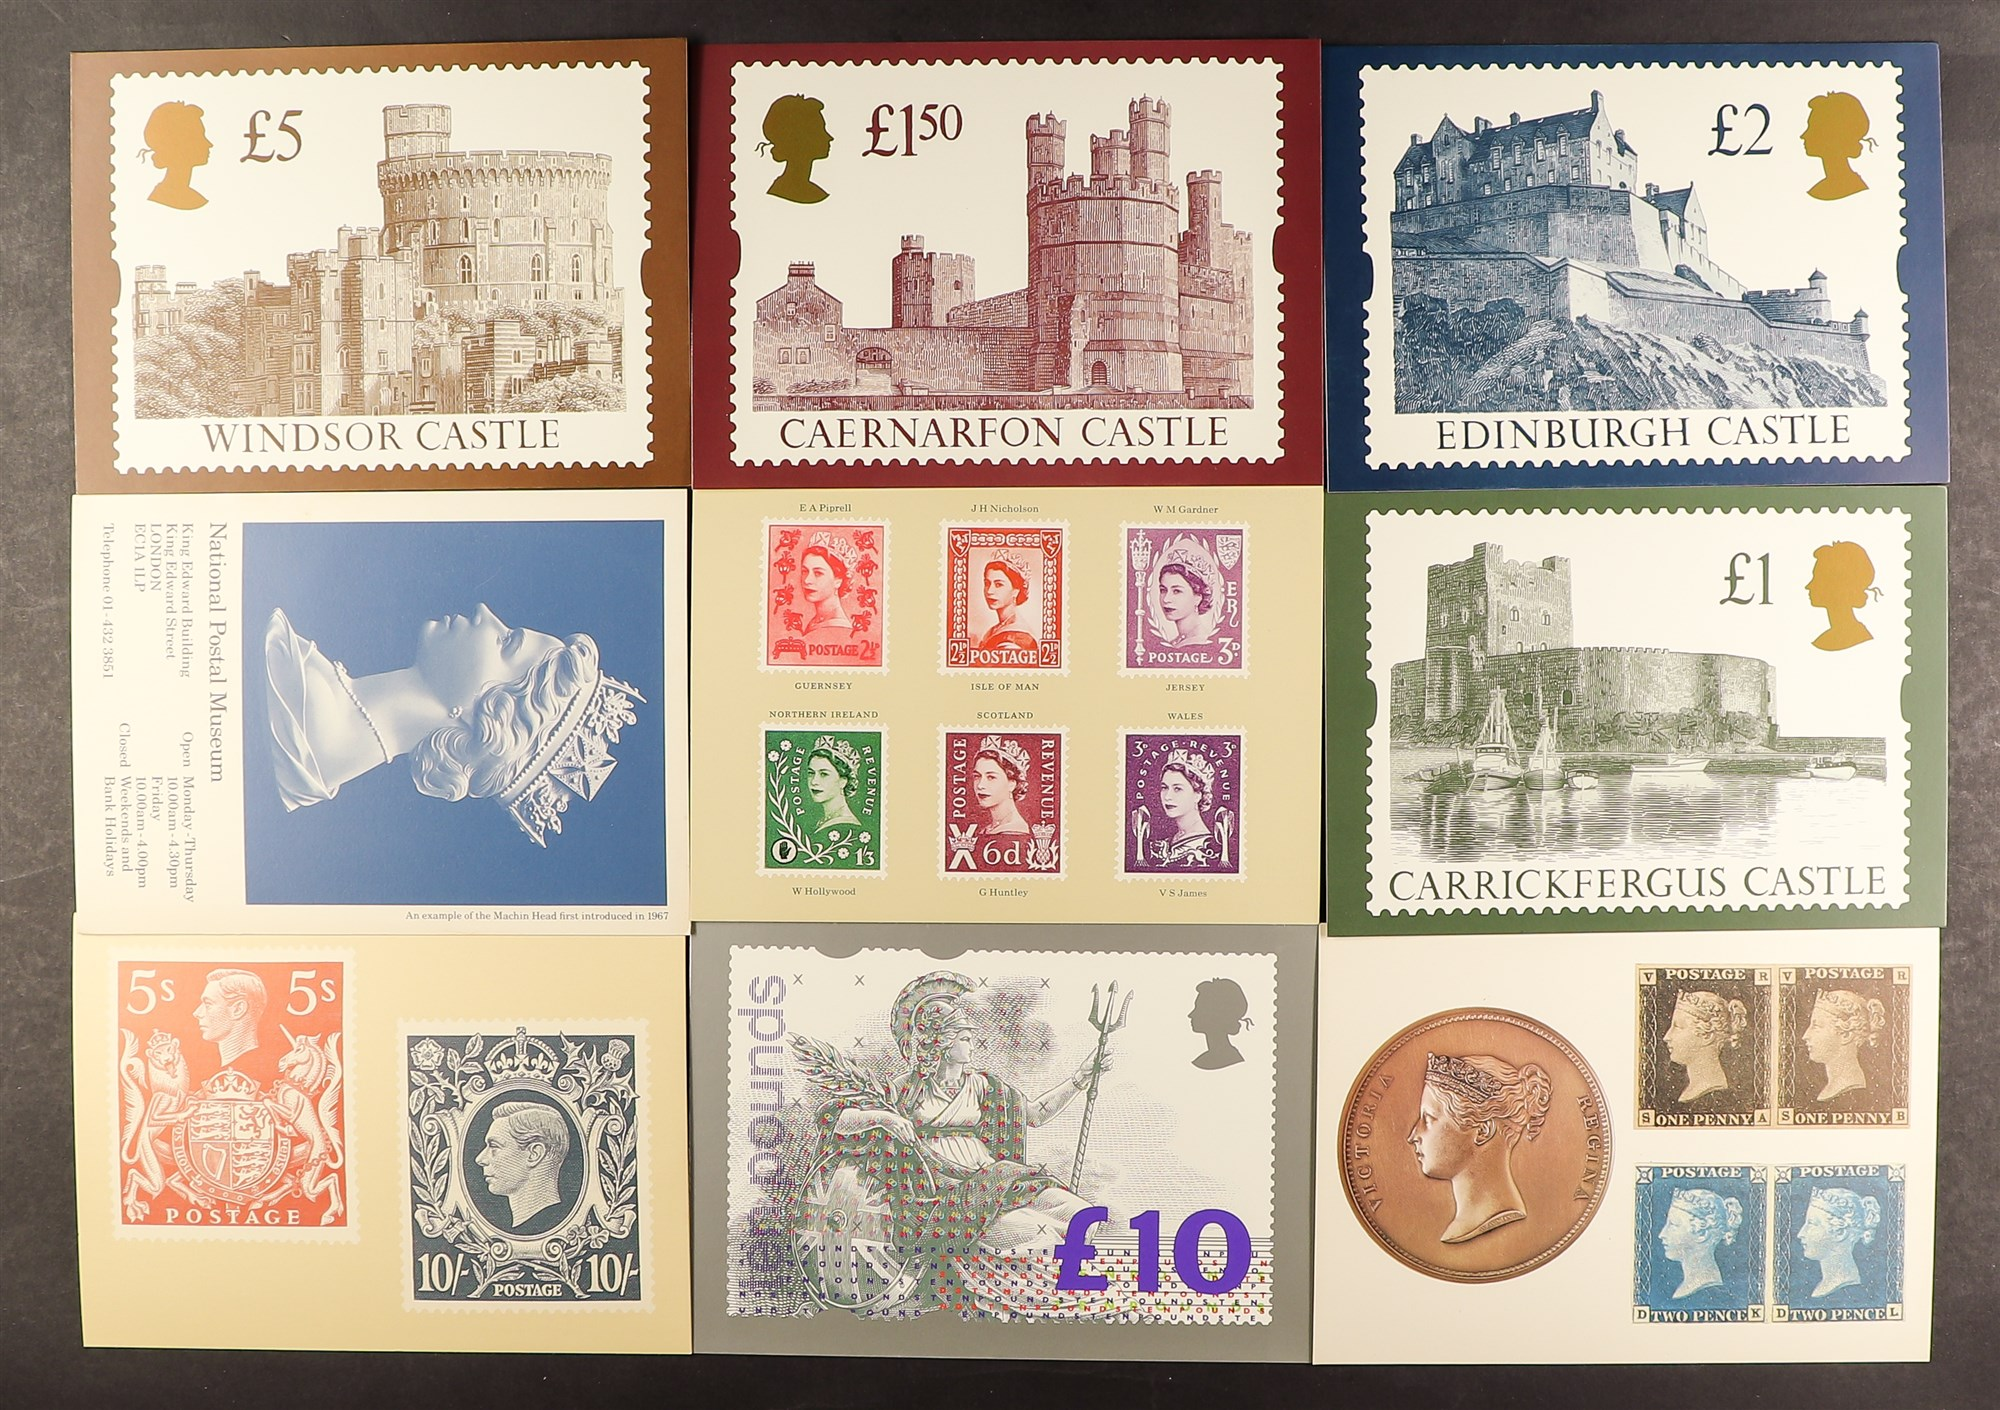 GB.ELIZABETH II 1970s - 2000s PHQ CARDS in large box with hundreds of complete sets loose, in